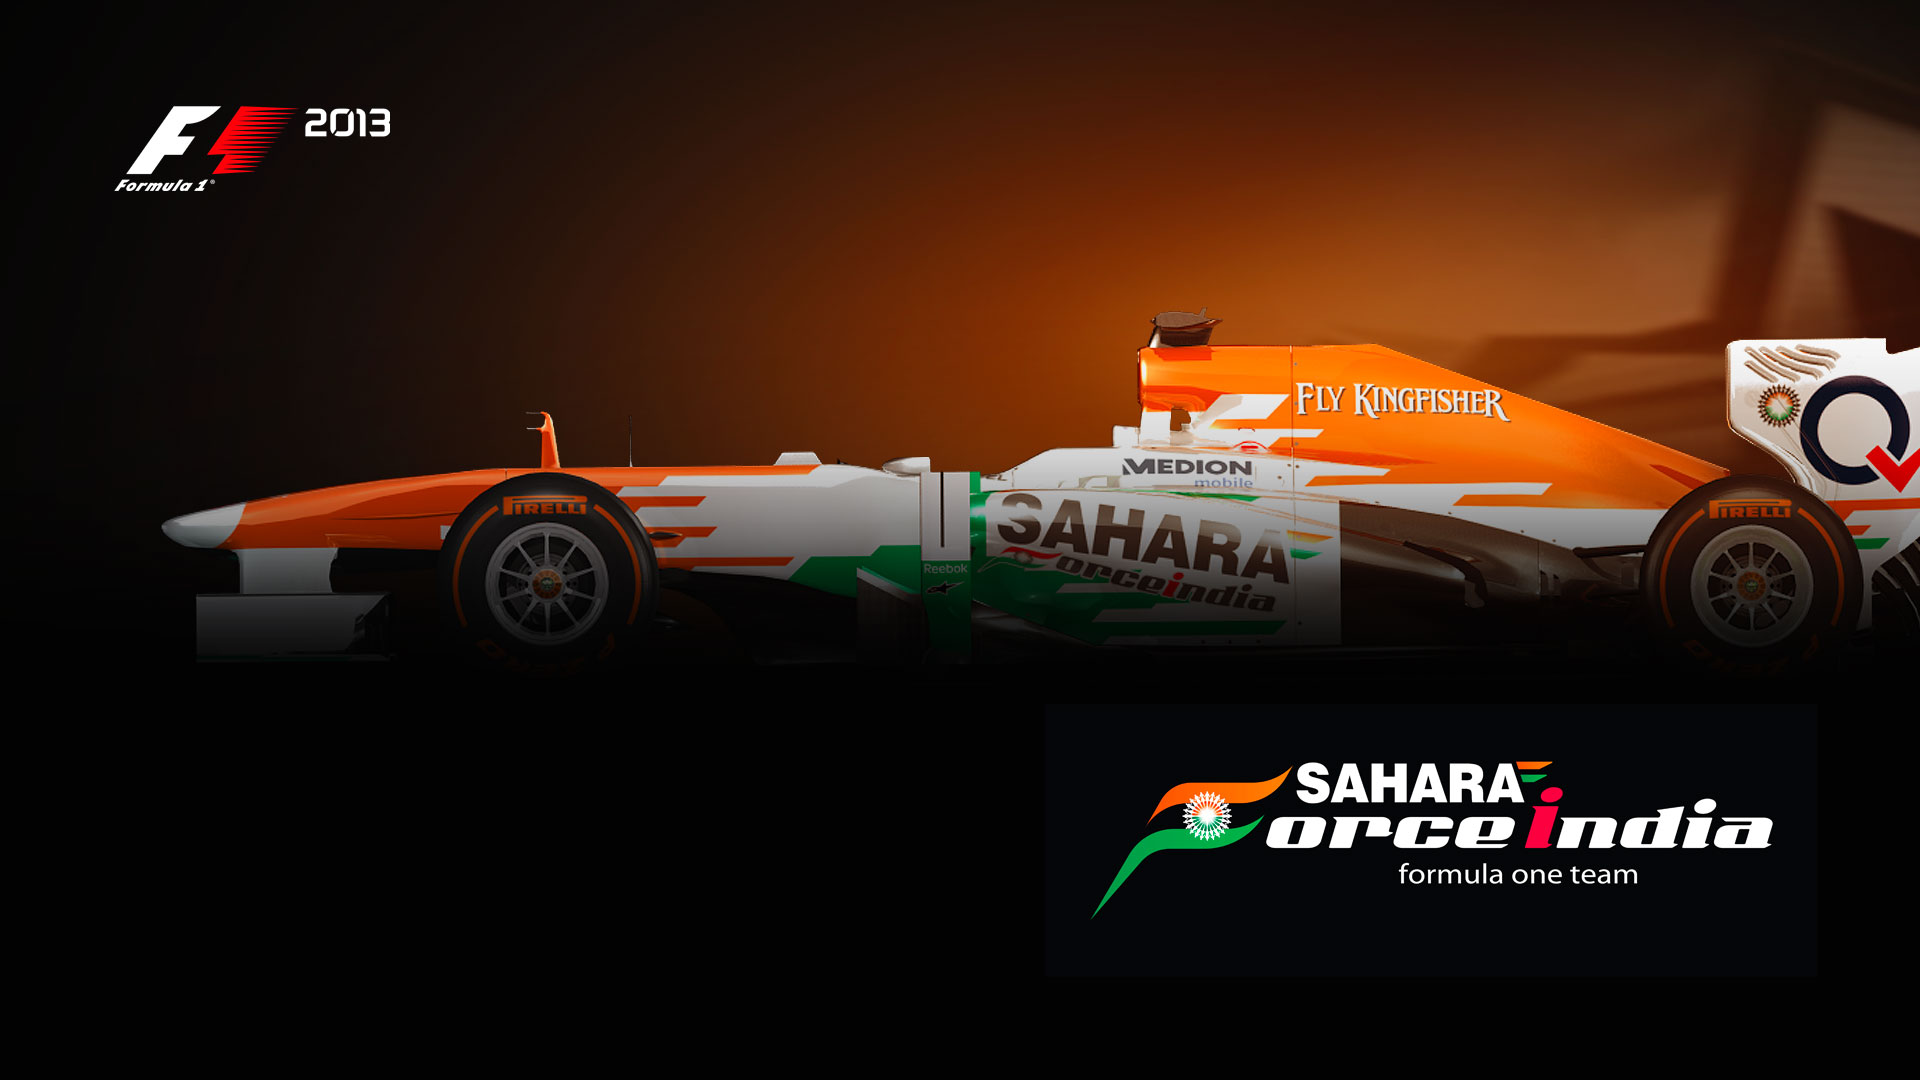 Sahara Force India F1 Team 667.03 Kb